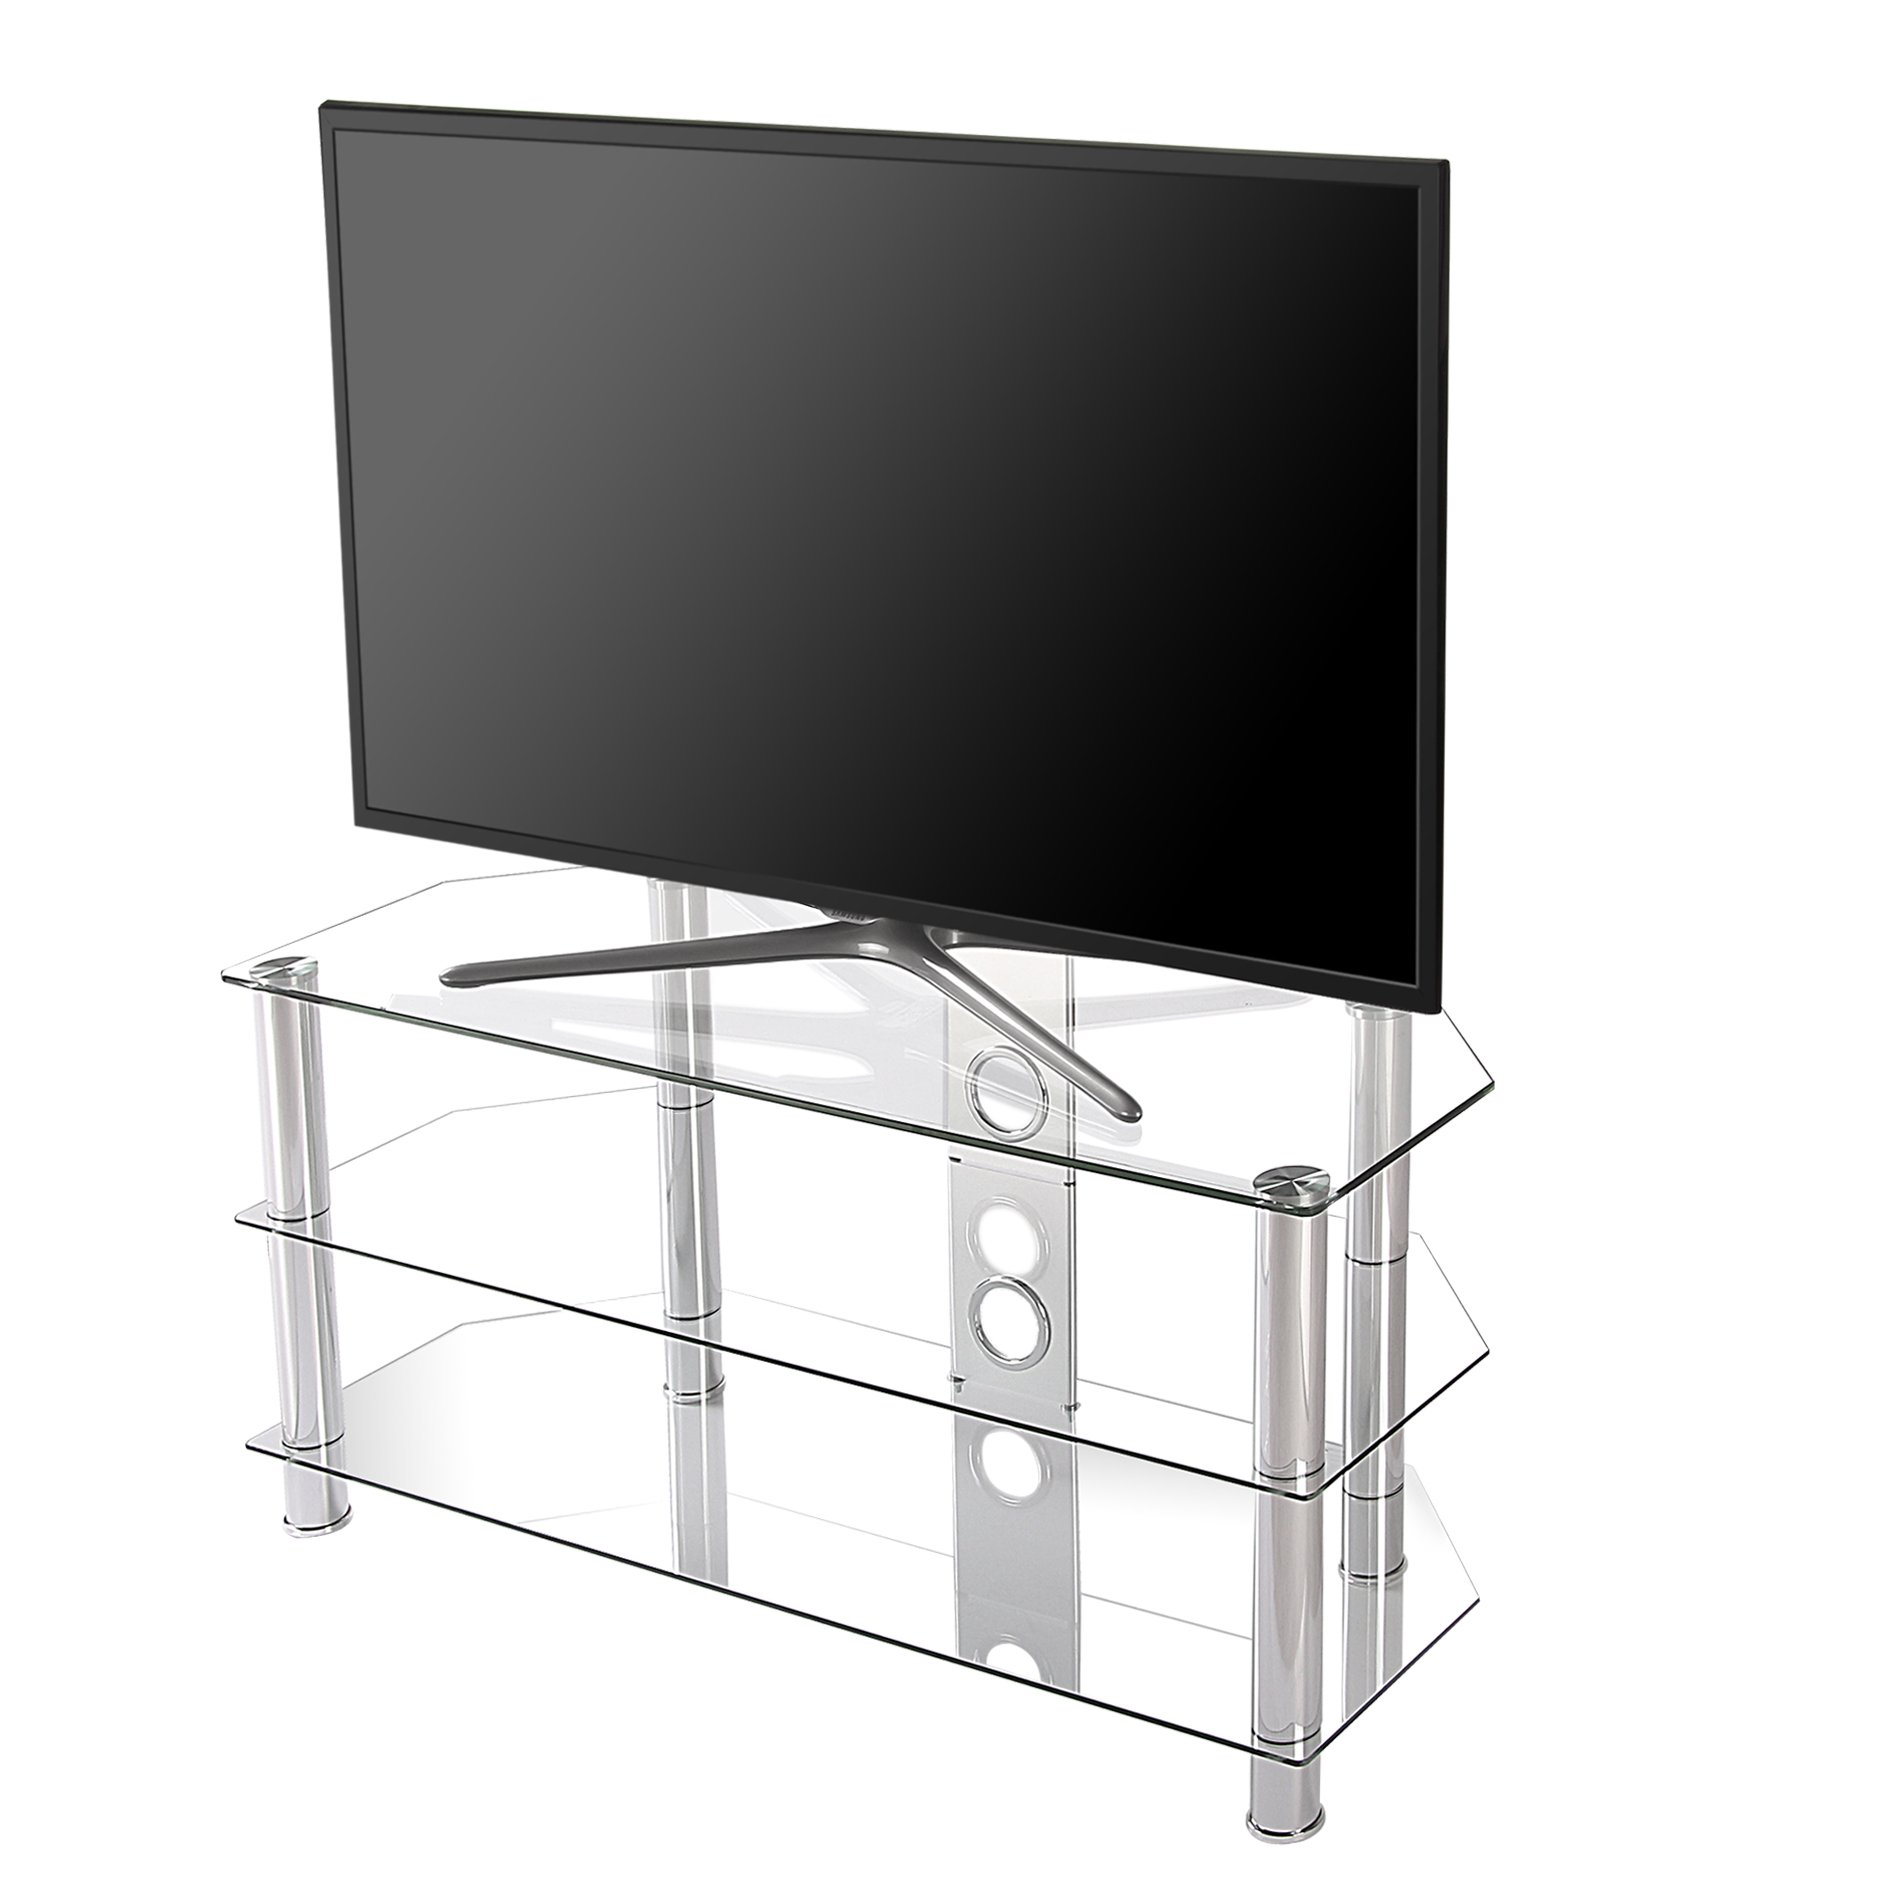 FITUEYES Classic Clear Tempered Glass TV stand suit for up to 46-inch LCD LED OLED TVS,FTS310501GT